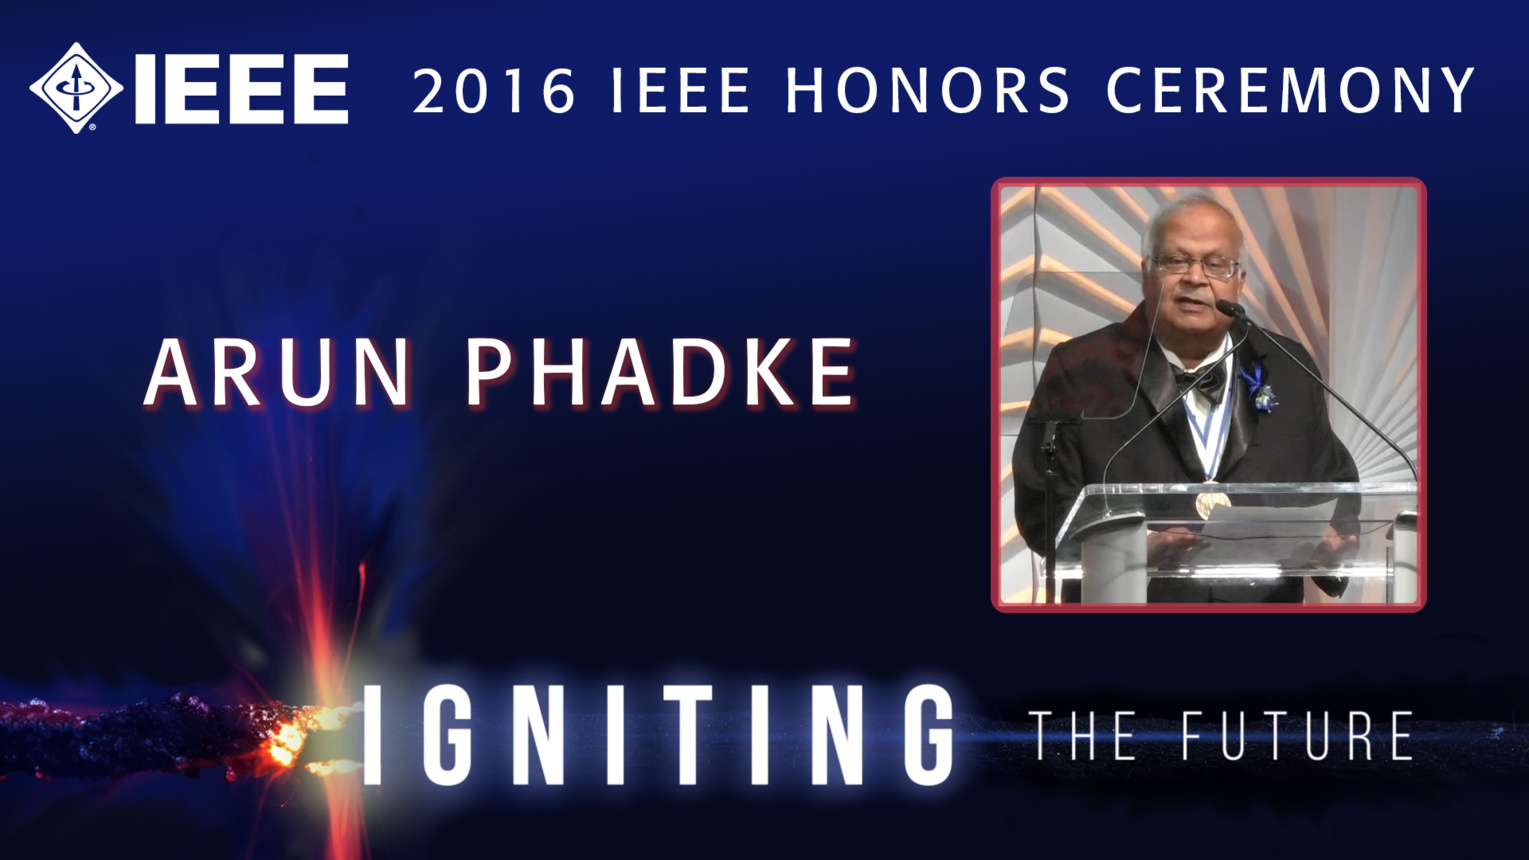 Arun G. Phadke receives the IEEE Medal in Power Engineering - Honors Ceremony 2016